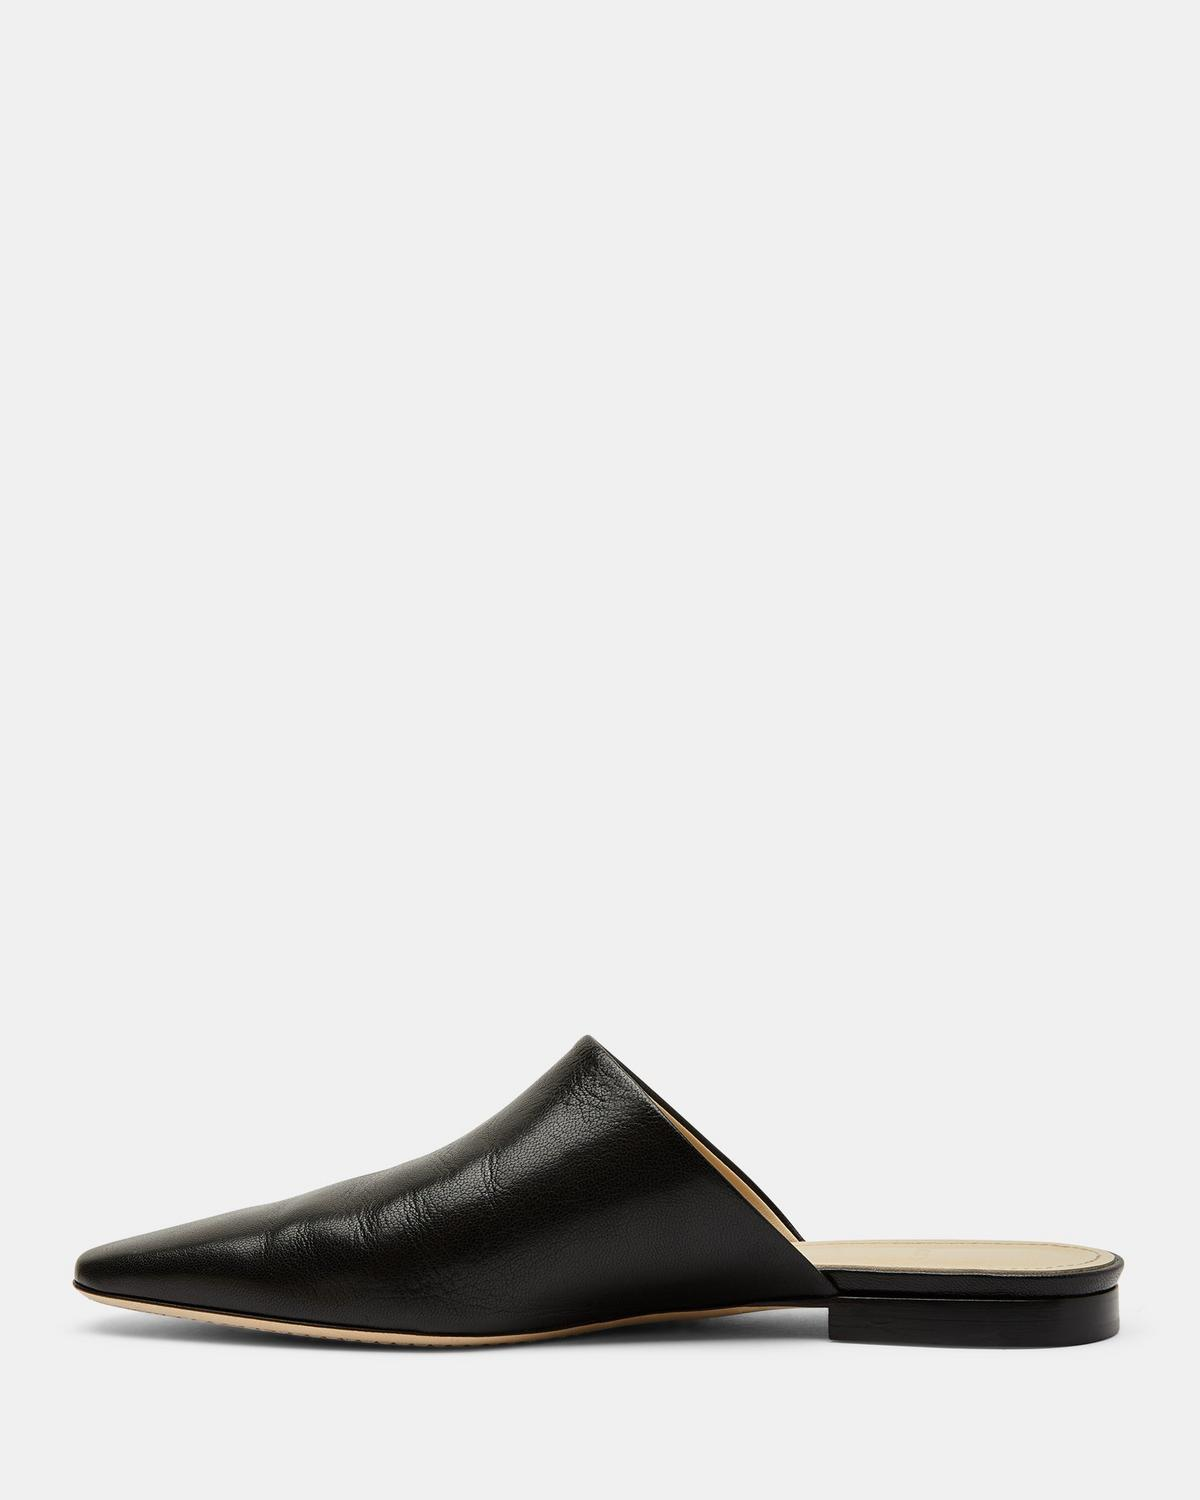 Slide Sandal in Leather